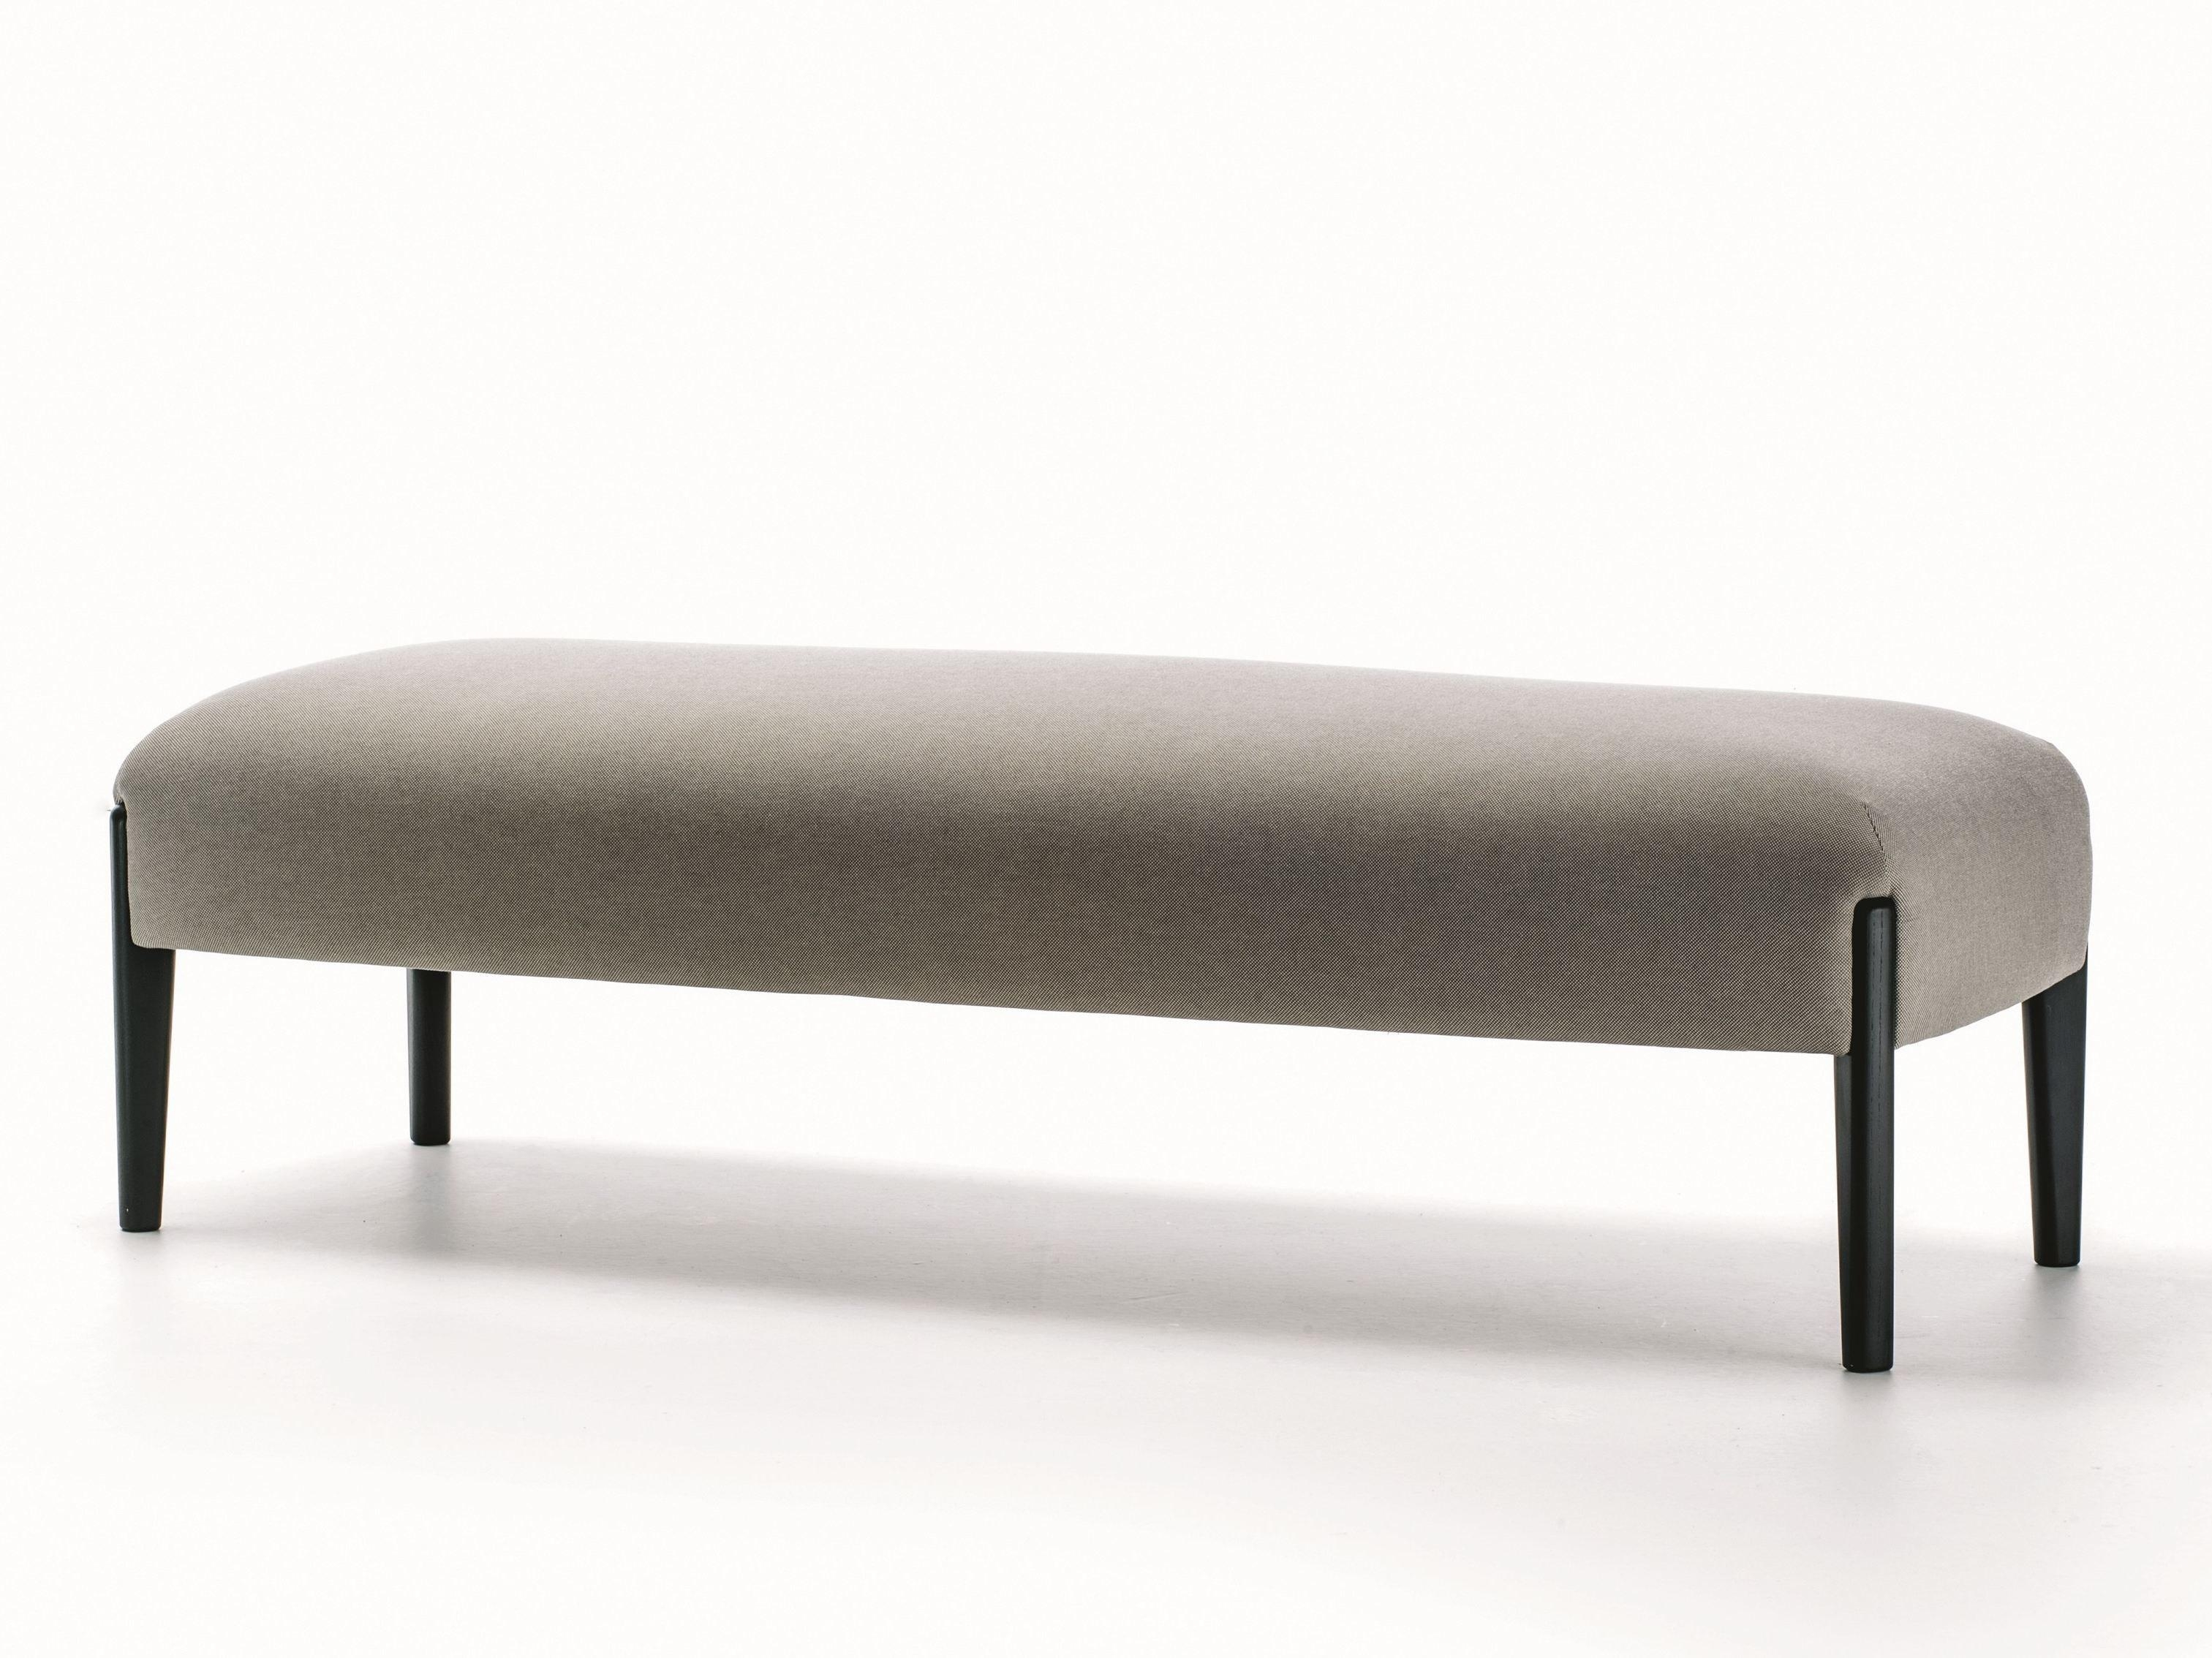 Bench Style Sofa With Ideas Hd Gallery 25307 | Kengire For Bench Style Sofas (Photo 8 of 20)